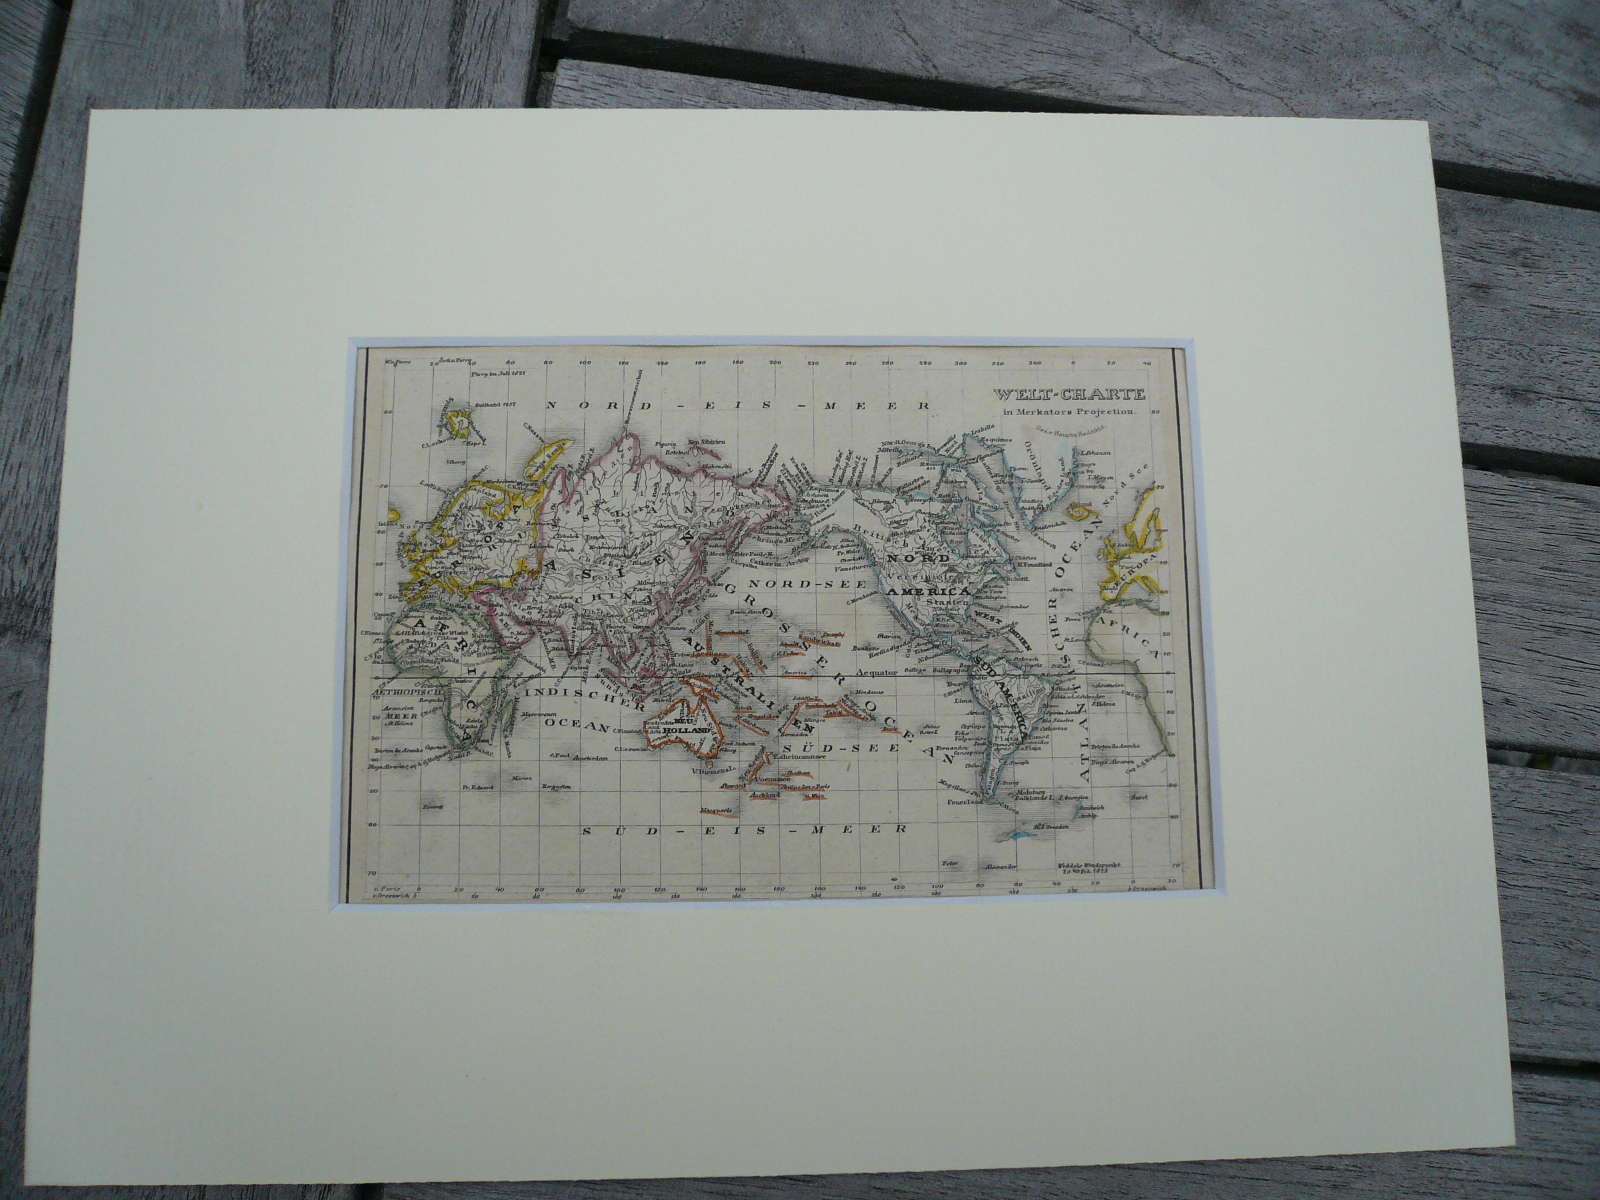 World + 4 Continents, anno 1850, 6 steelengravings